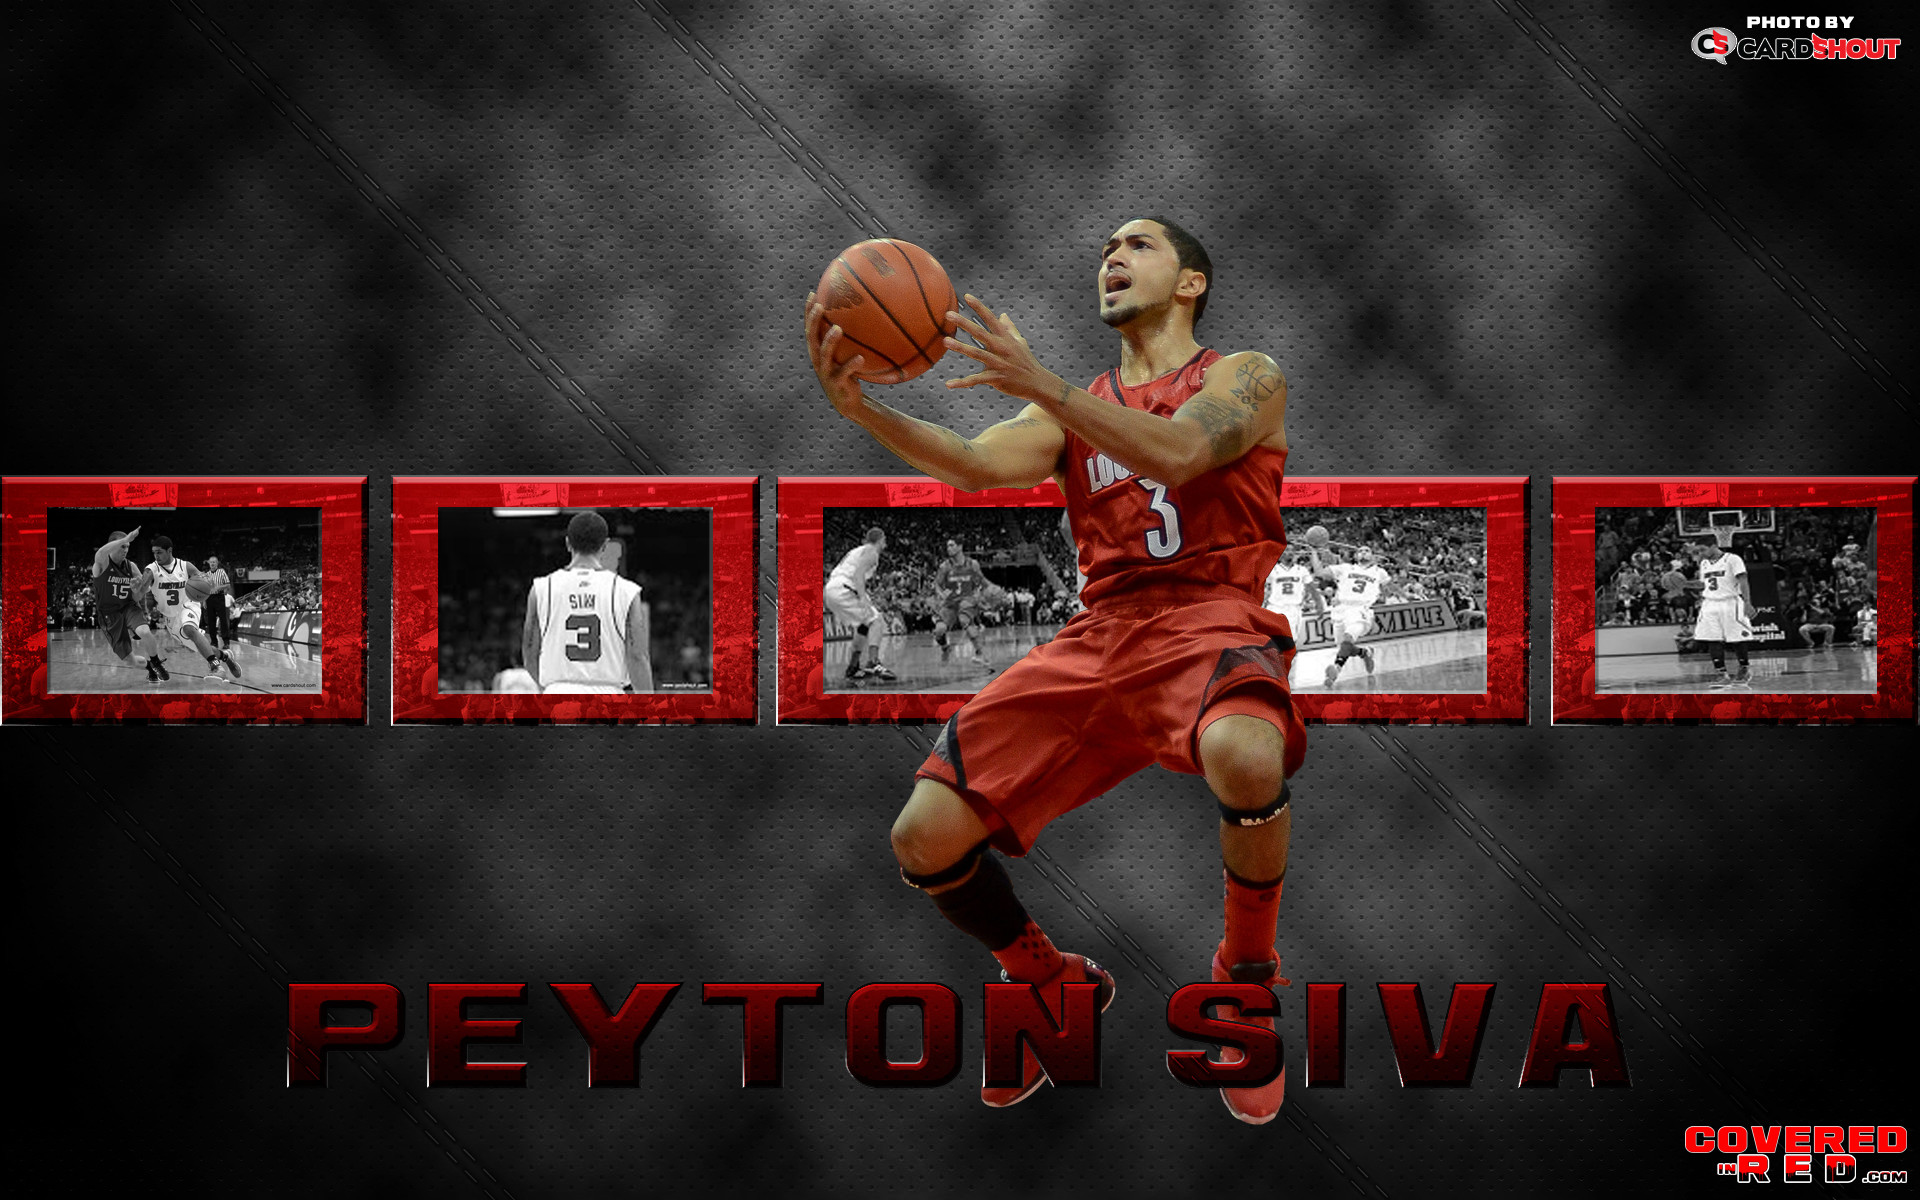 1920x1200 Best 25+ Peyton siva ideas only on Pinterest | Louisville cardinals  basketball, Louisville basketball and University of louisville